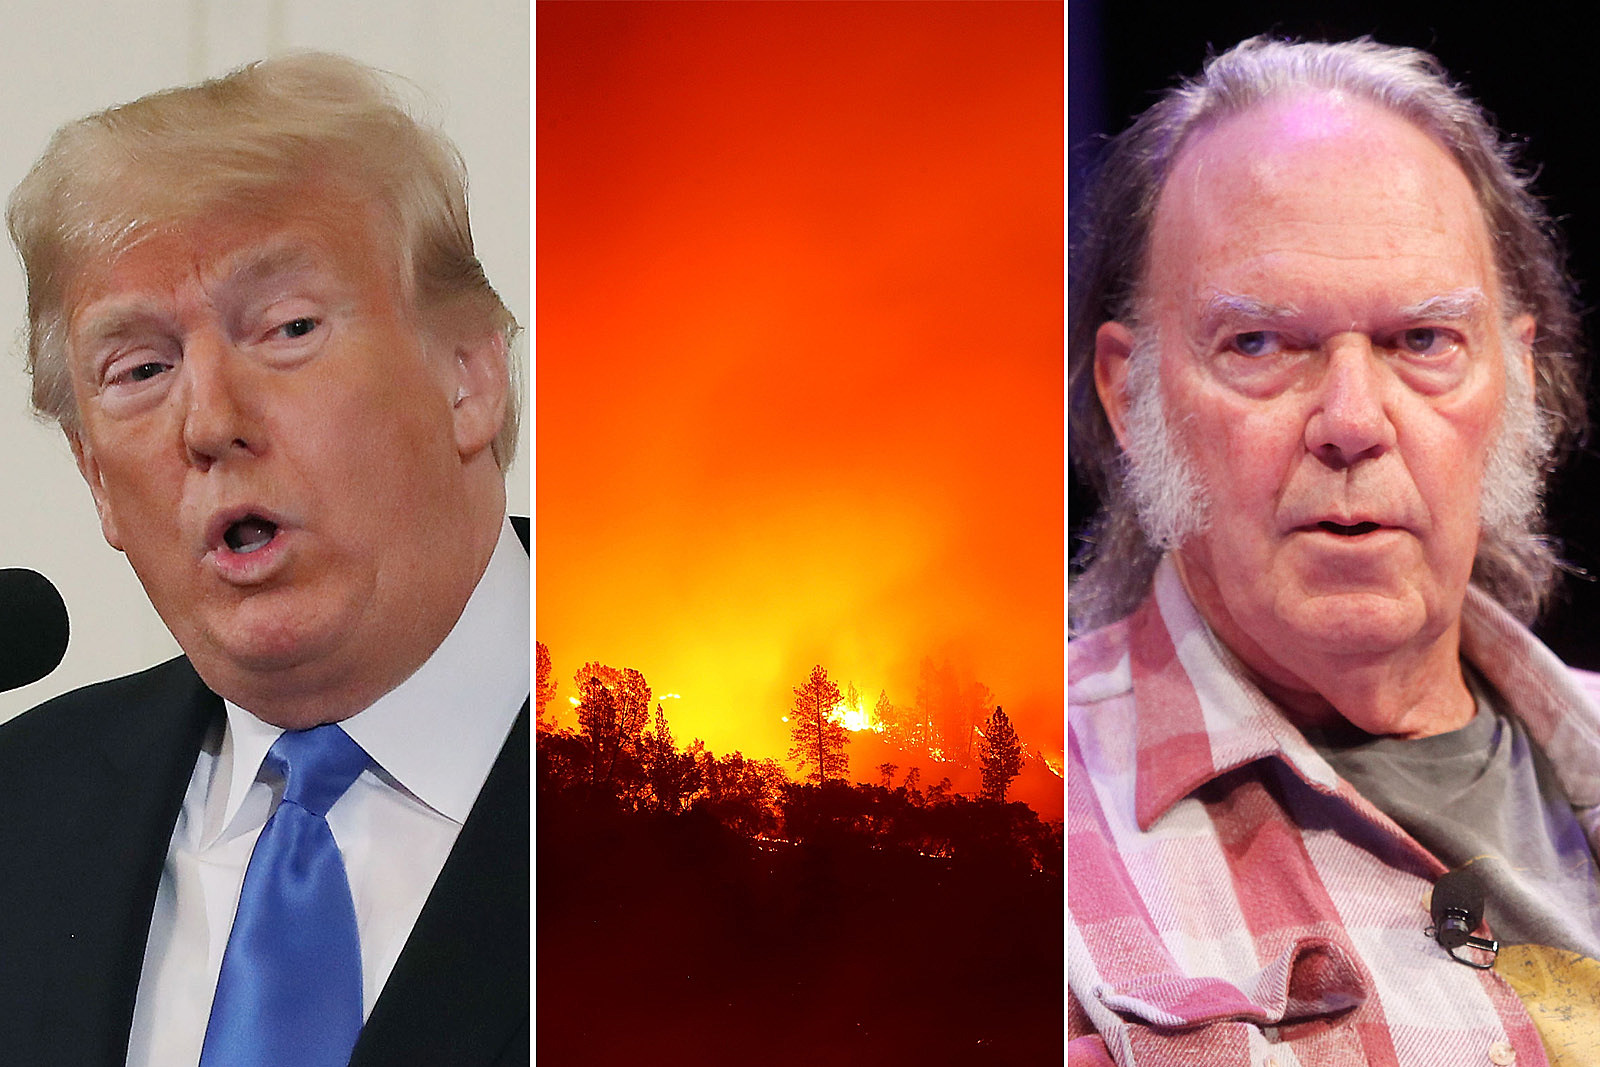 Neil Young Loses Home in California Fires, Then Attacks Donald Trump